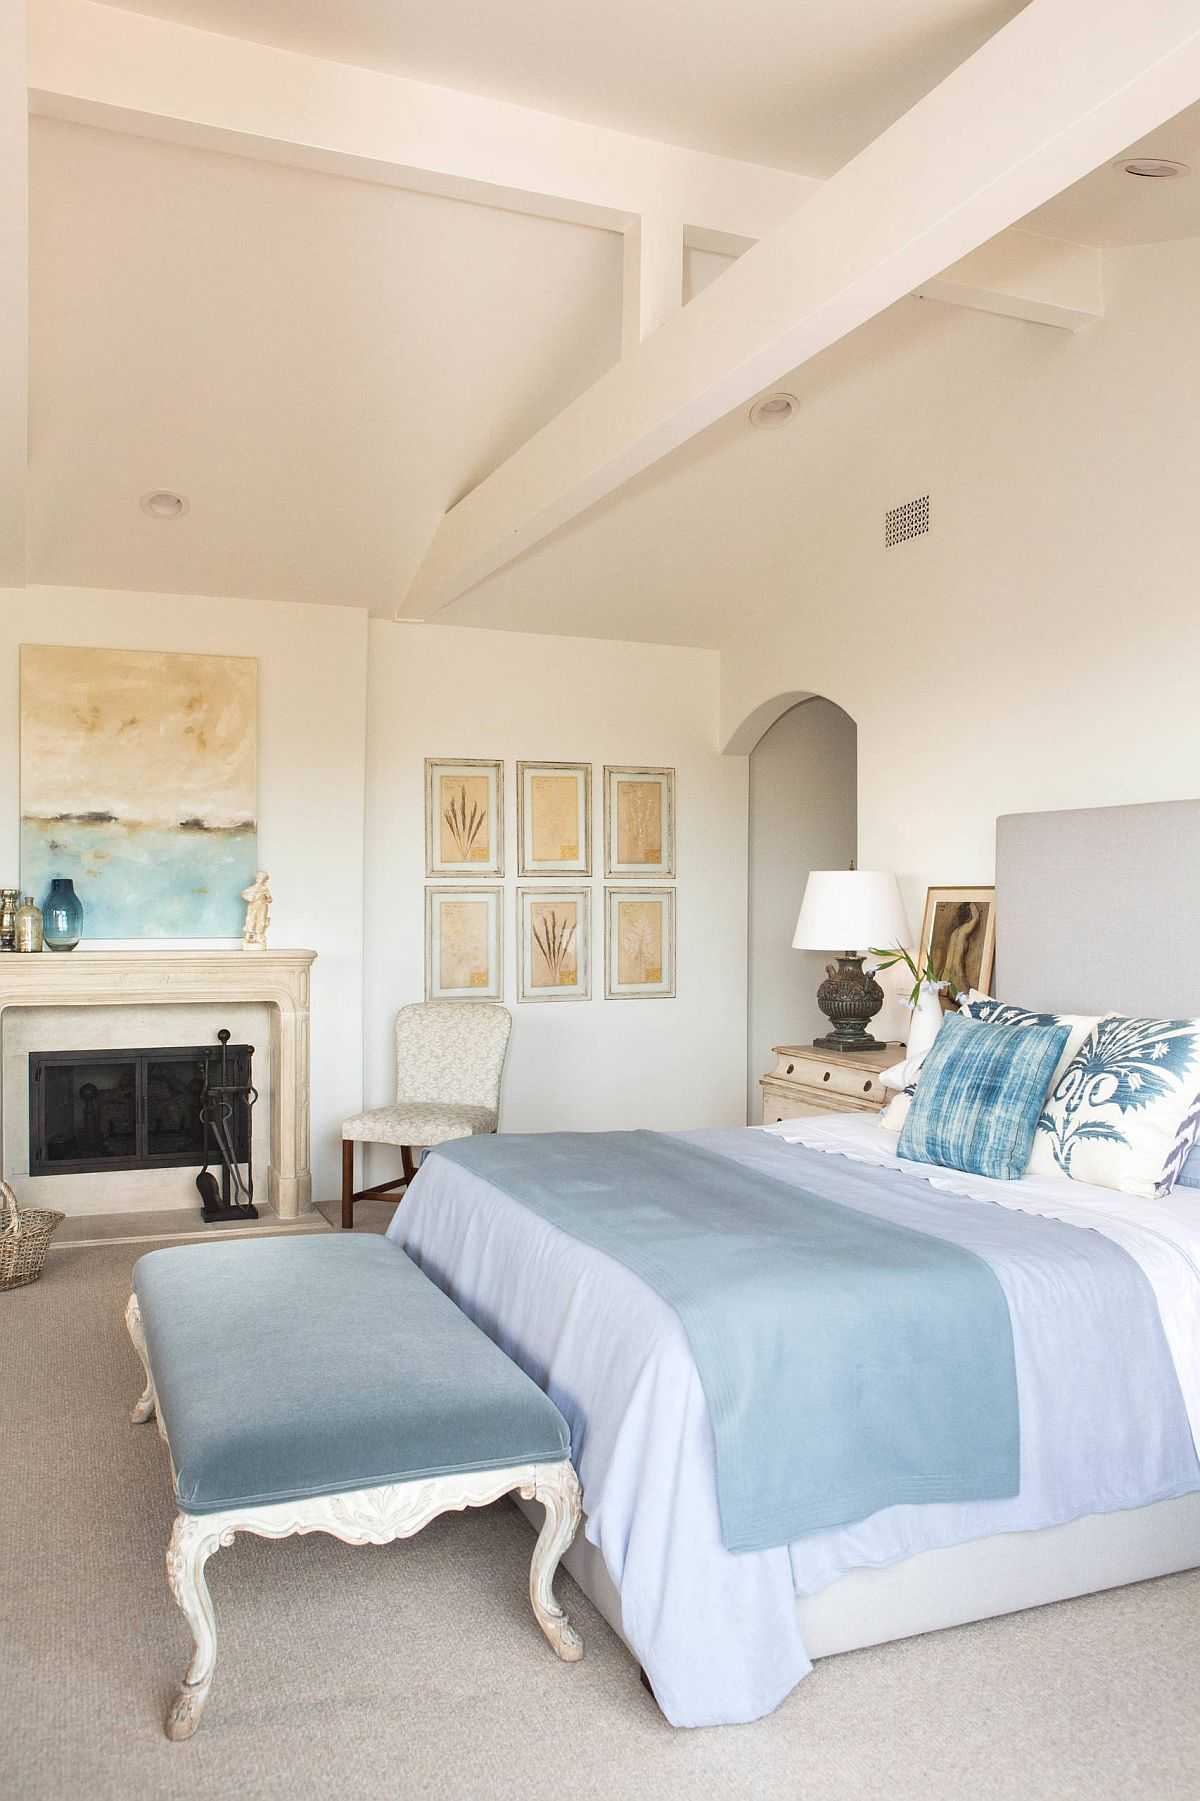 Luxurious master bedroom of Malibu beach house in white and blue with an elegant gallery wall